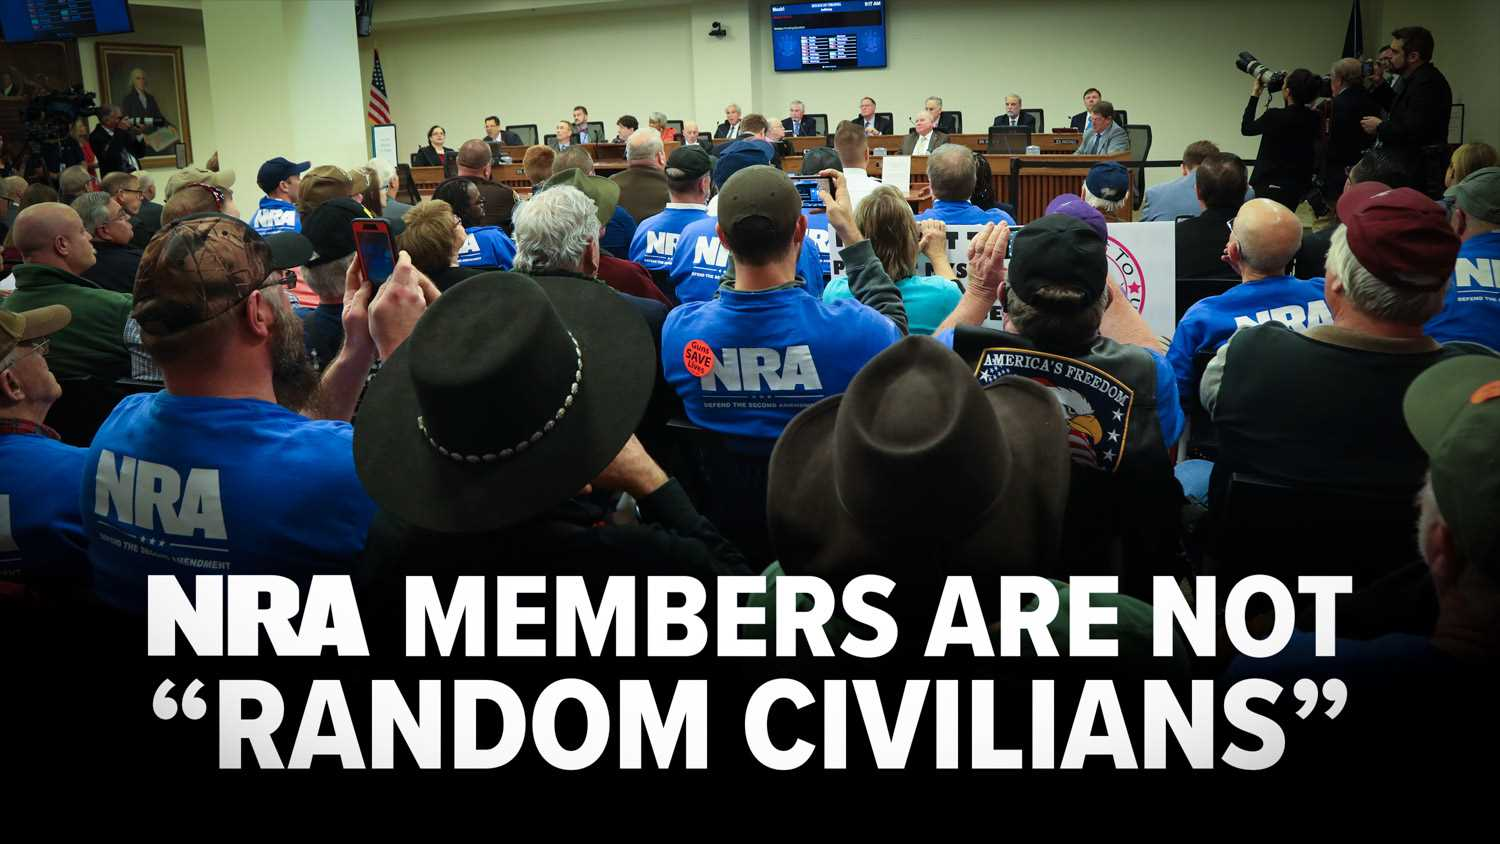 """Sorry Shannon, But Those """"Random Civilians"""" Are What Are Known As NRA Members"""